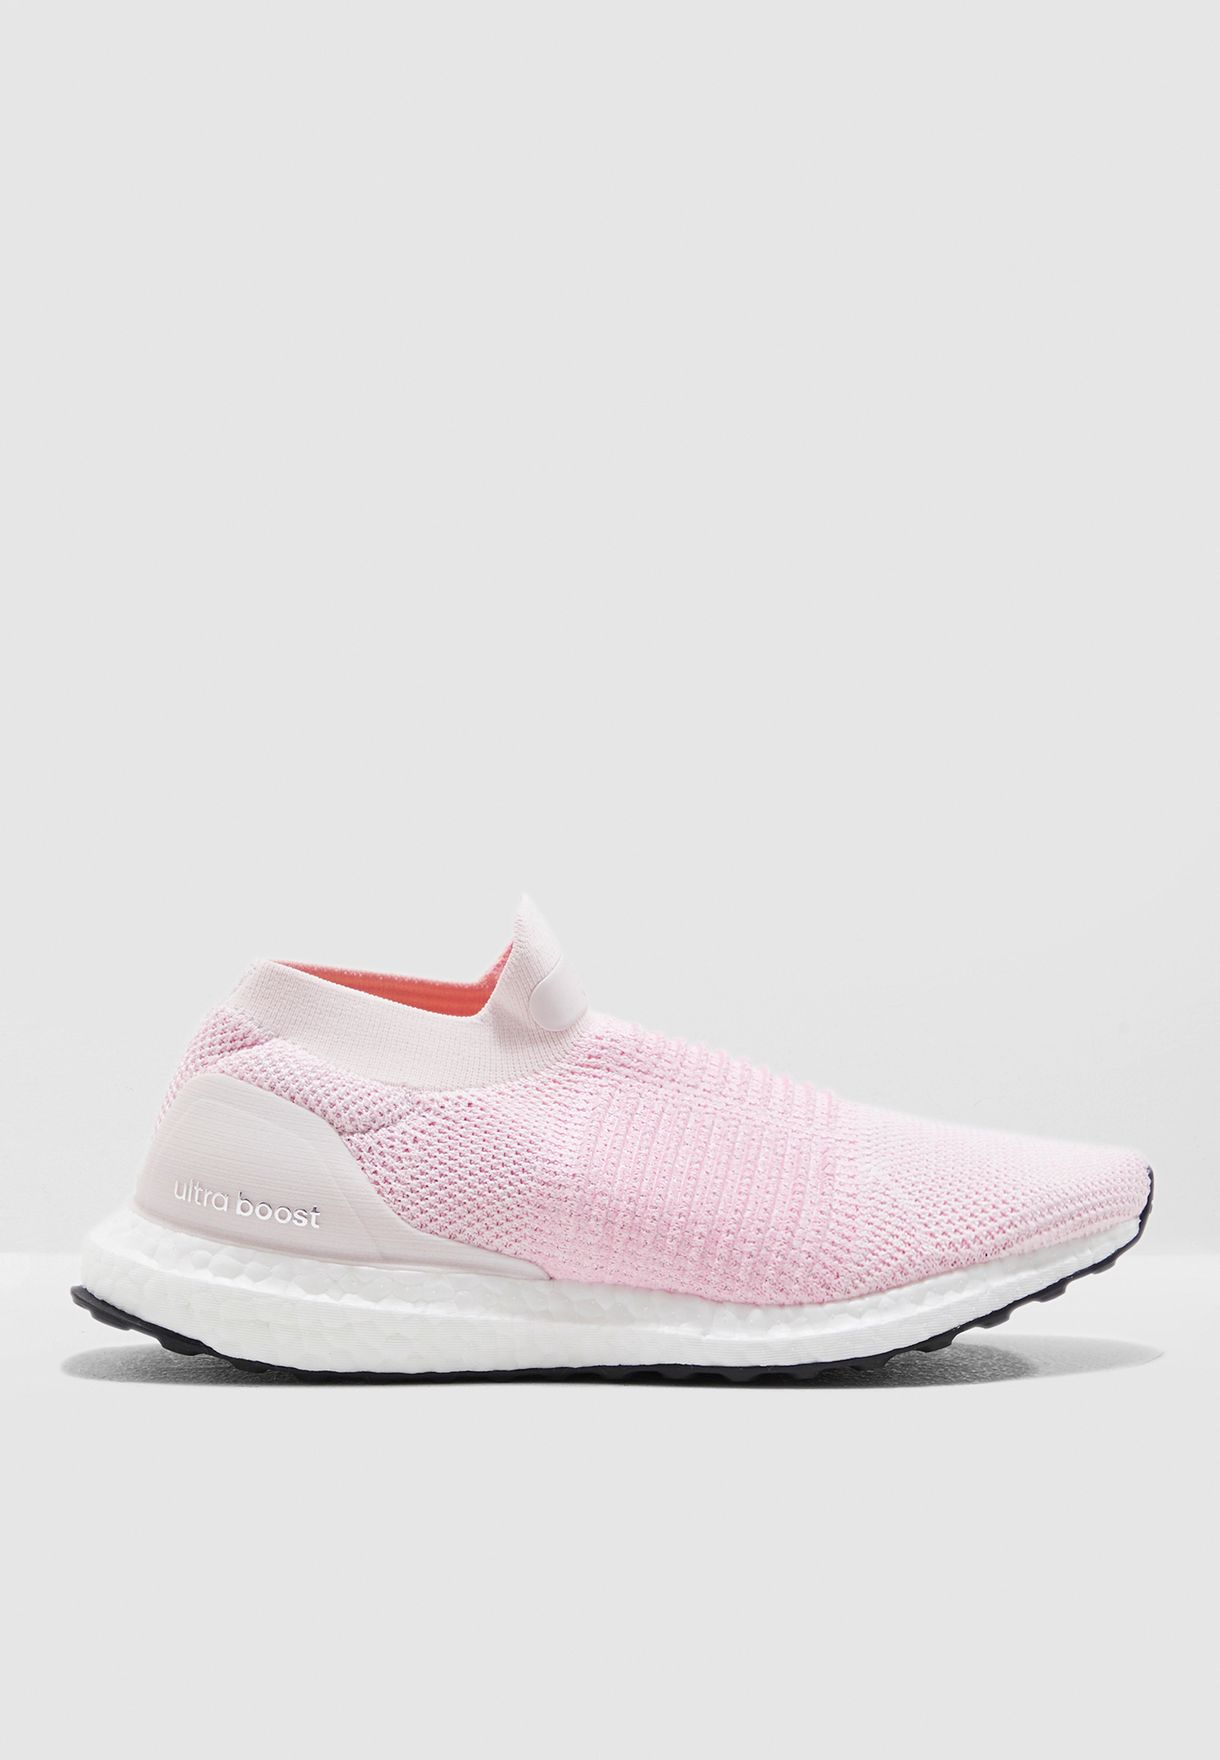 2e2b5cad3 Shop adidas pink UltraBoost Laceless B75856 for Women in Saudi ...